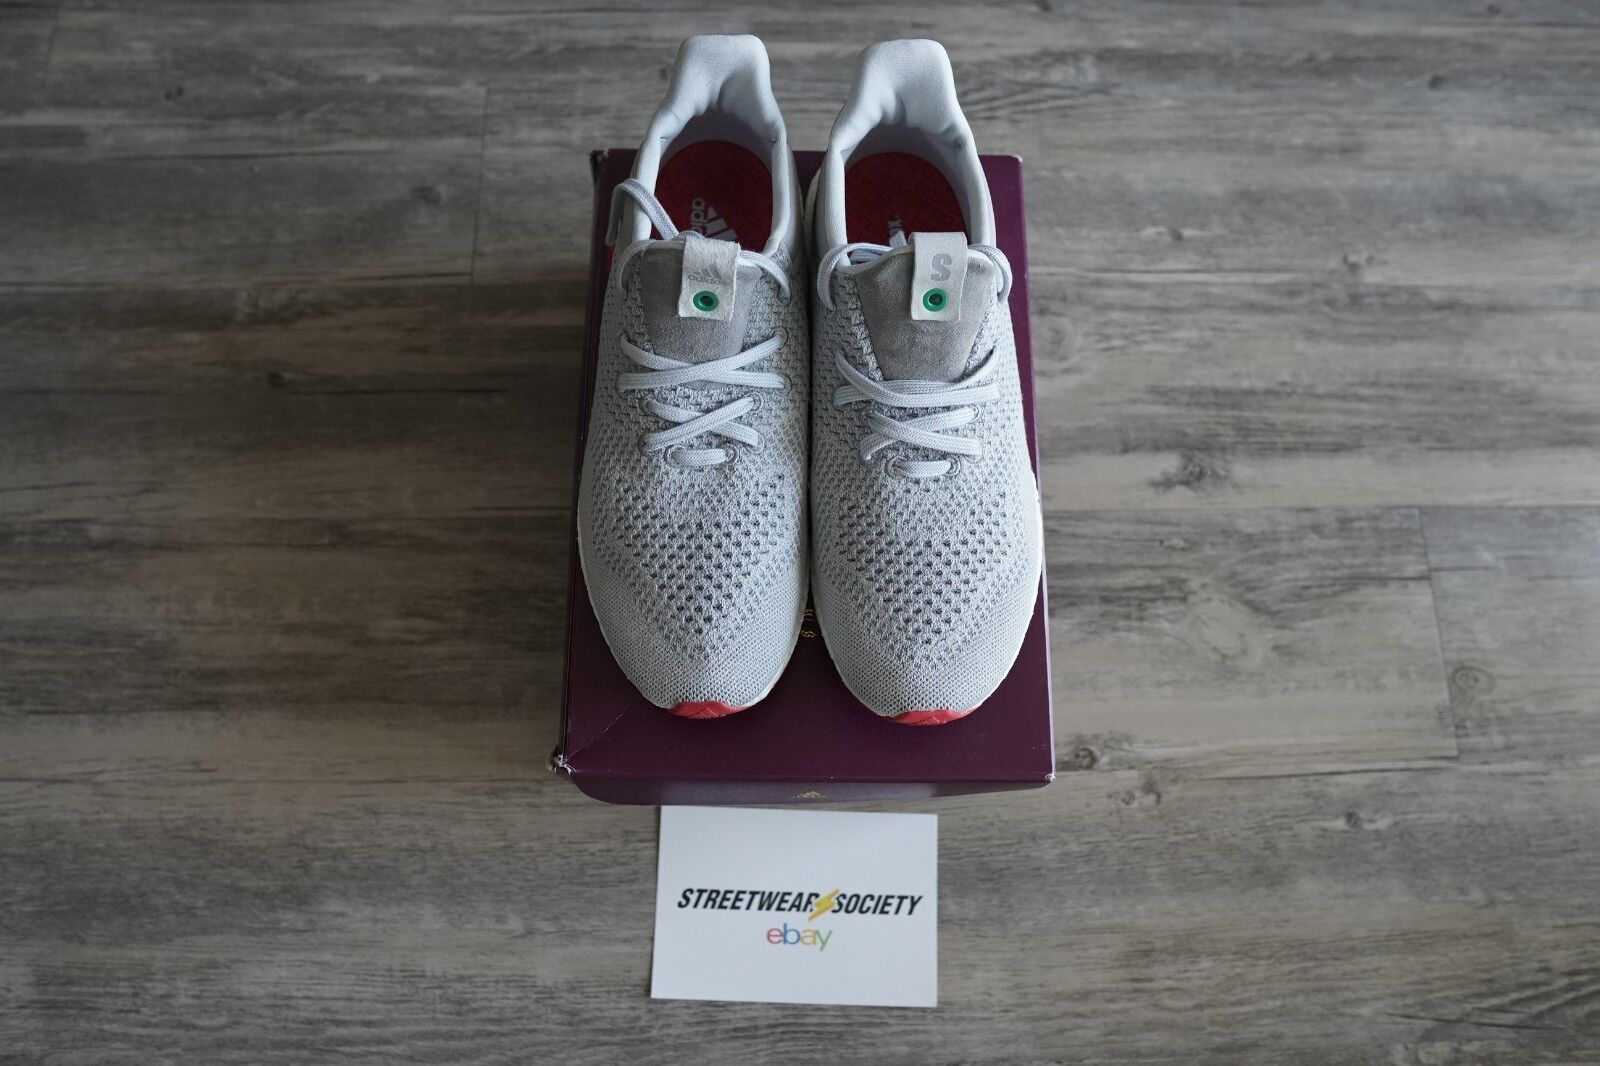 Adidas x Ultra Boost Uncaged SOLEBOX 1.0 size 9.5 - 100% authentic